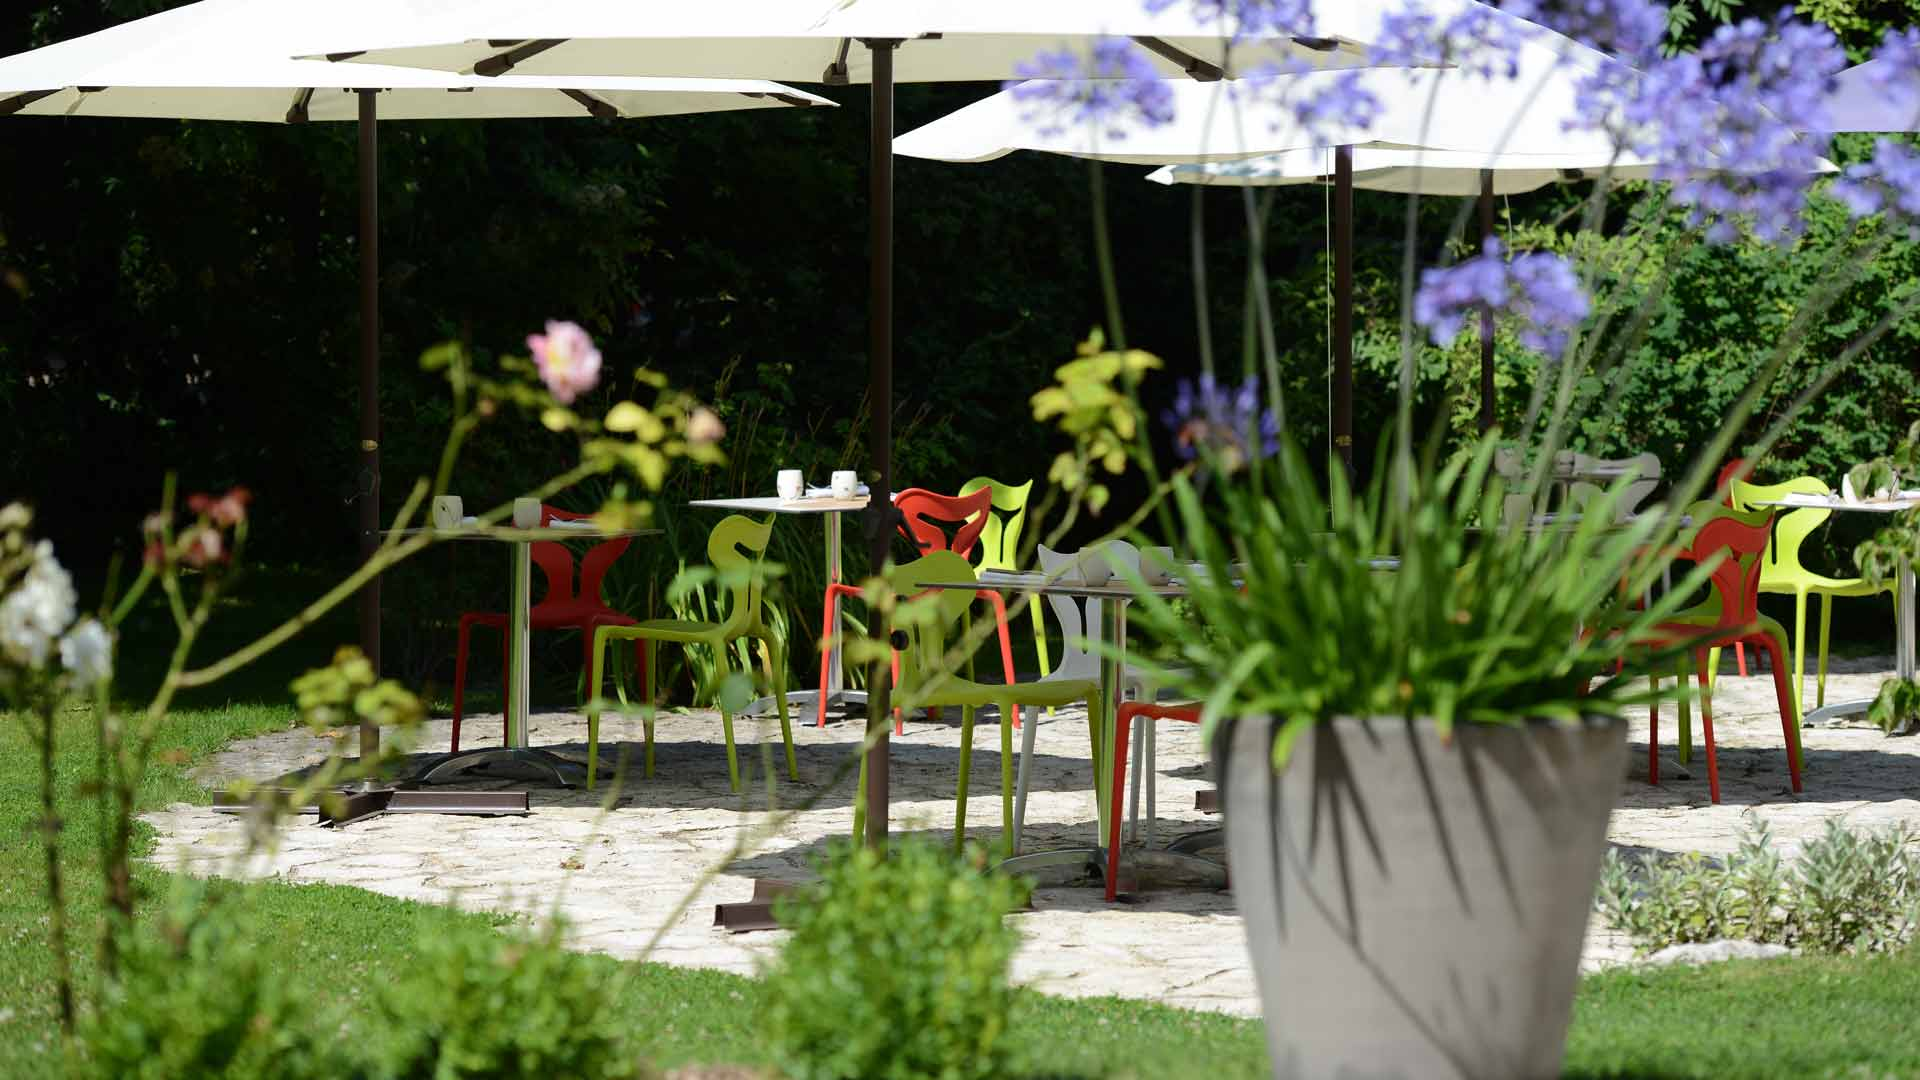 H tel le jardin des plumes stouring in france for Restaurant le jardin morat